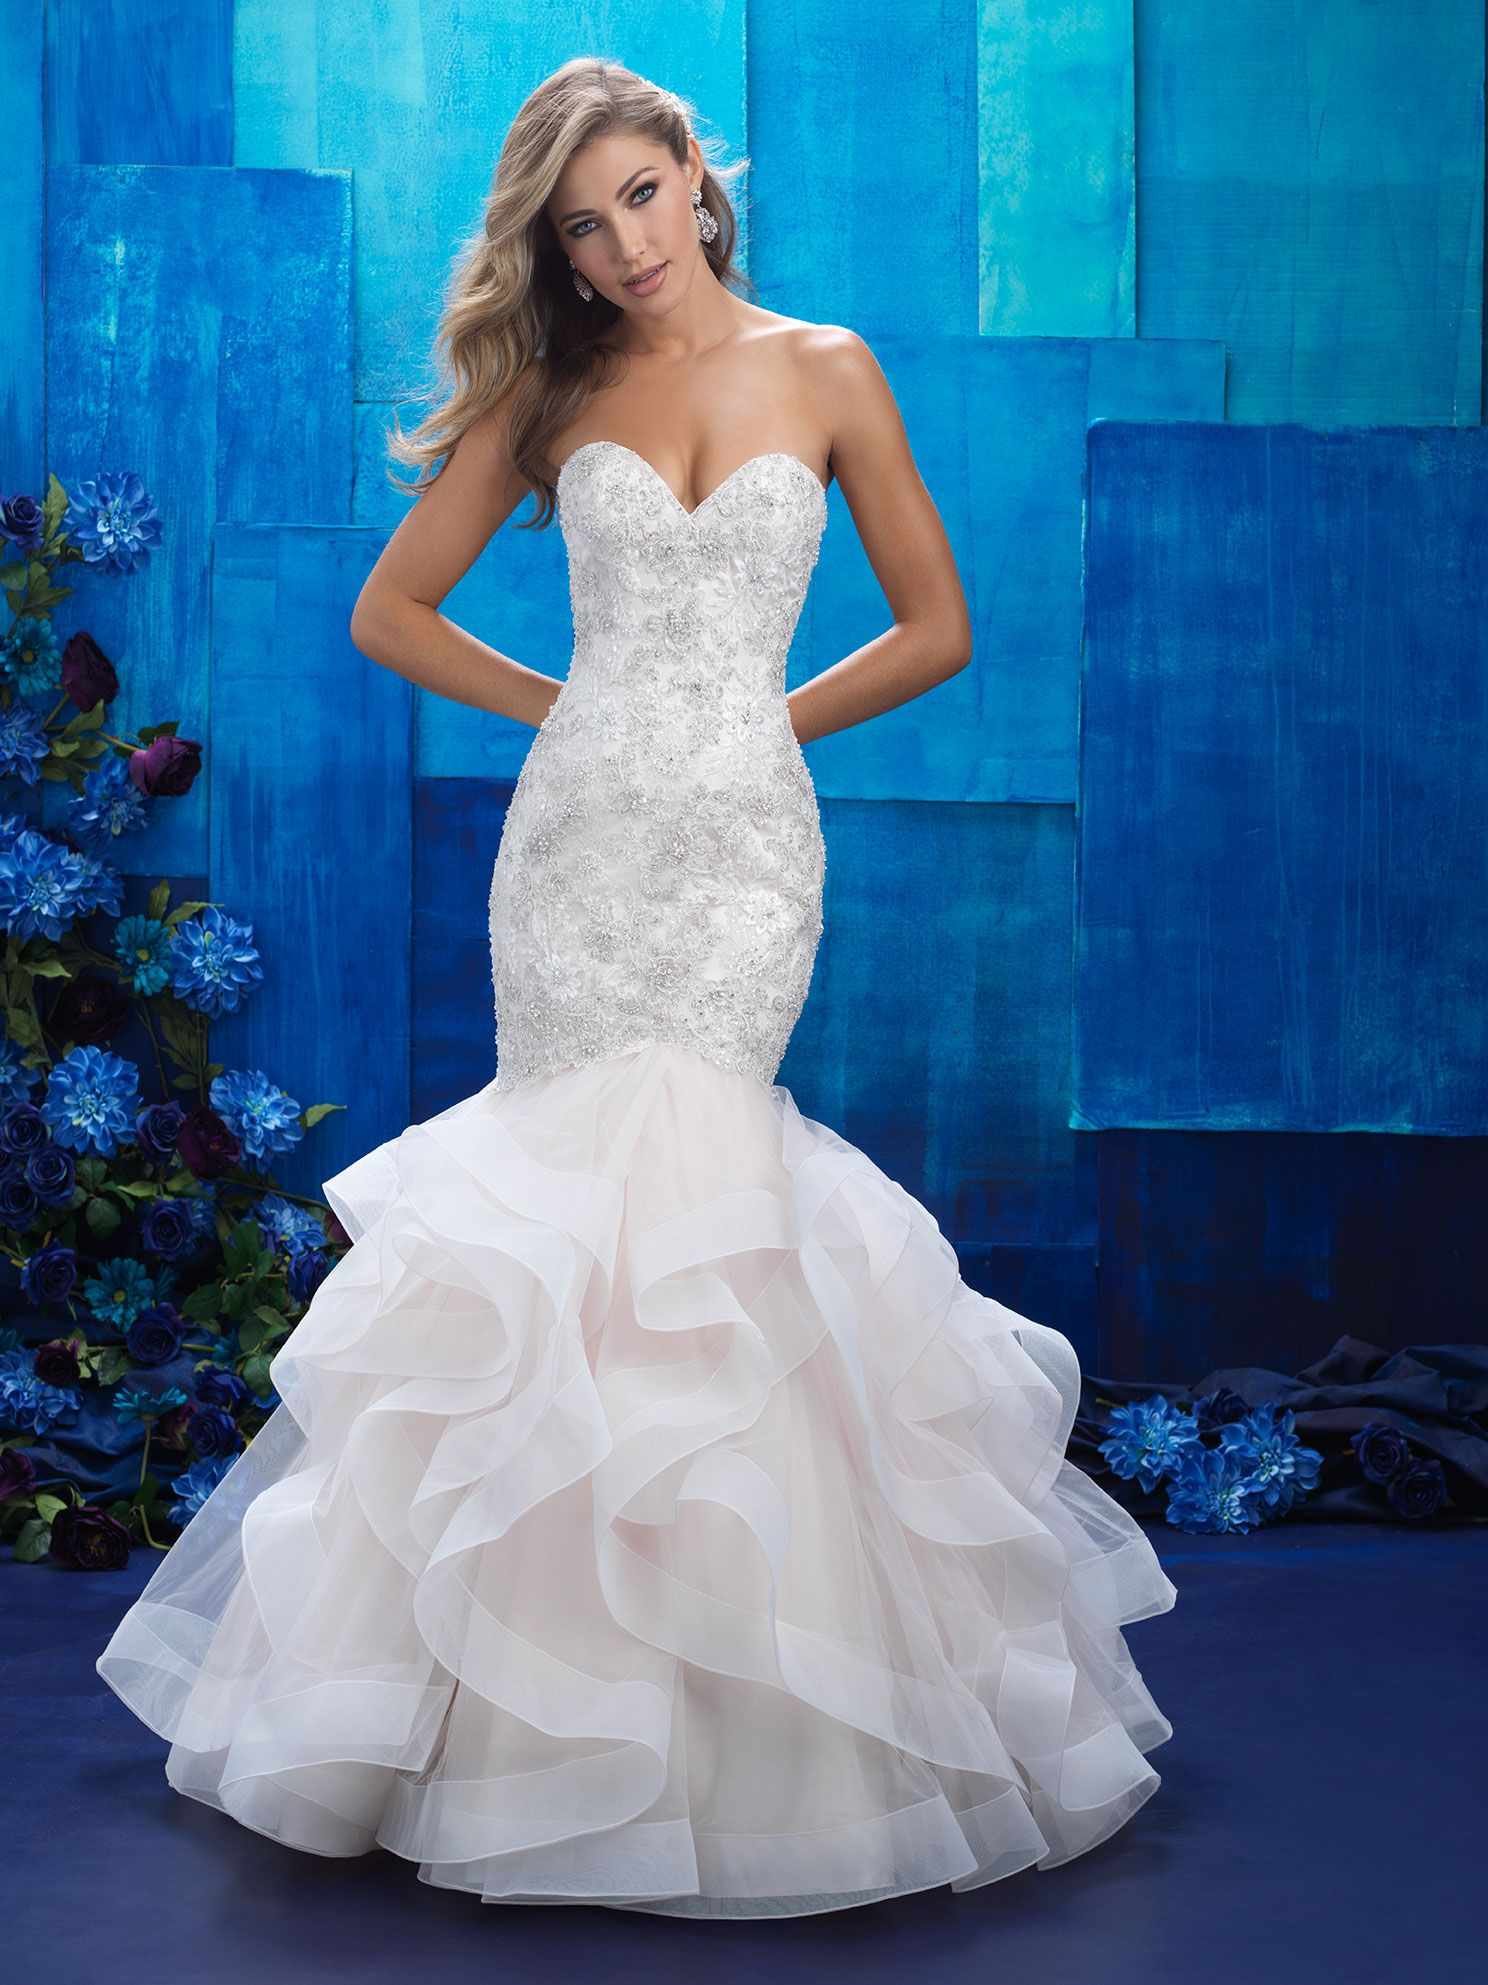 New Bridal Gown Available at Ella Park Bridal  ca72014e6ef5